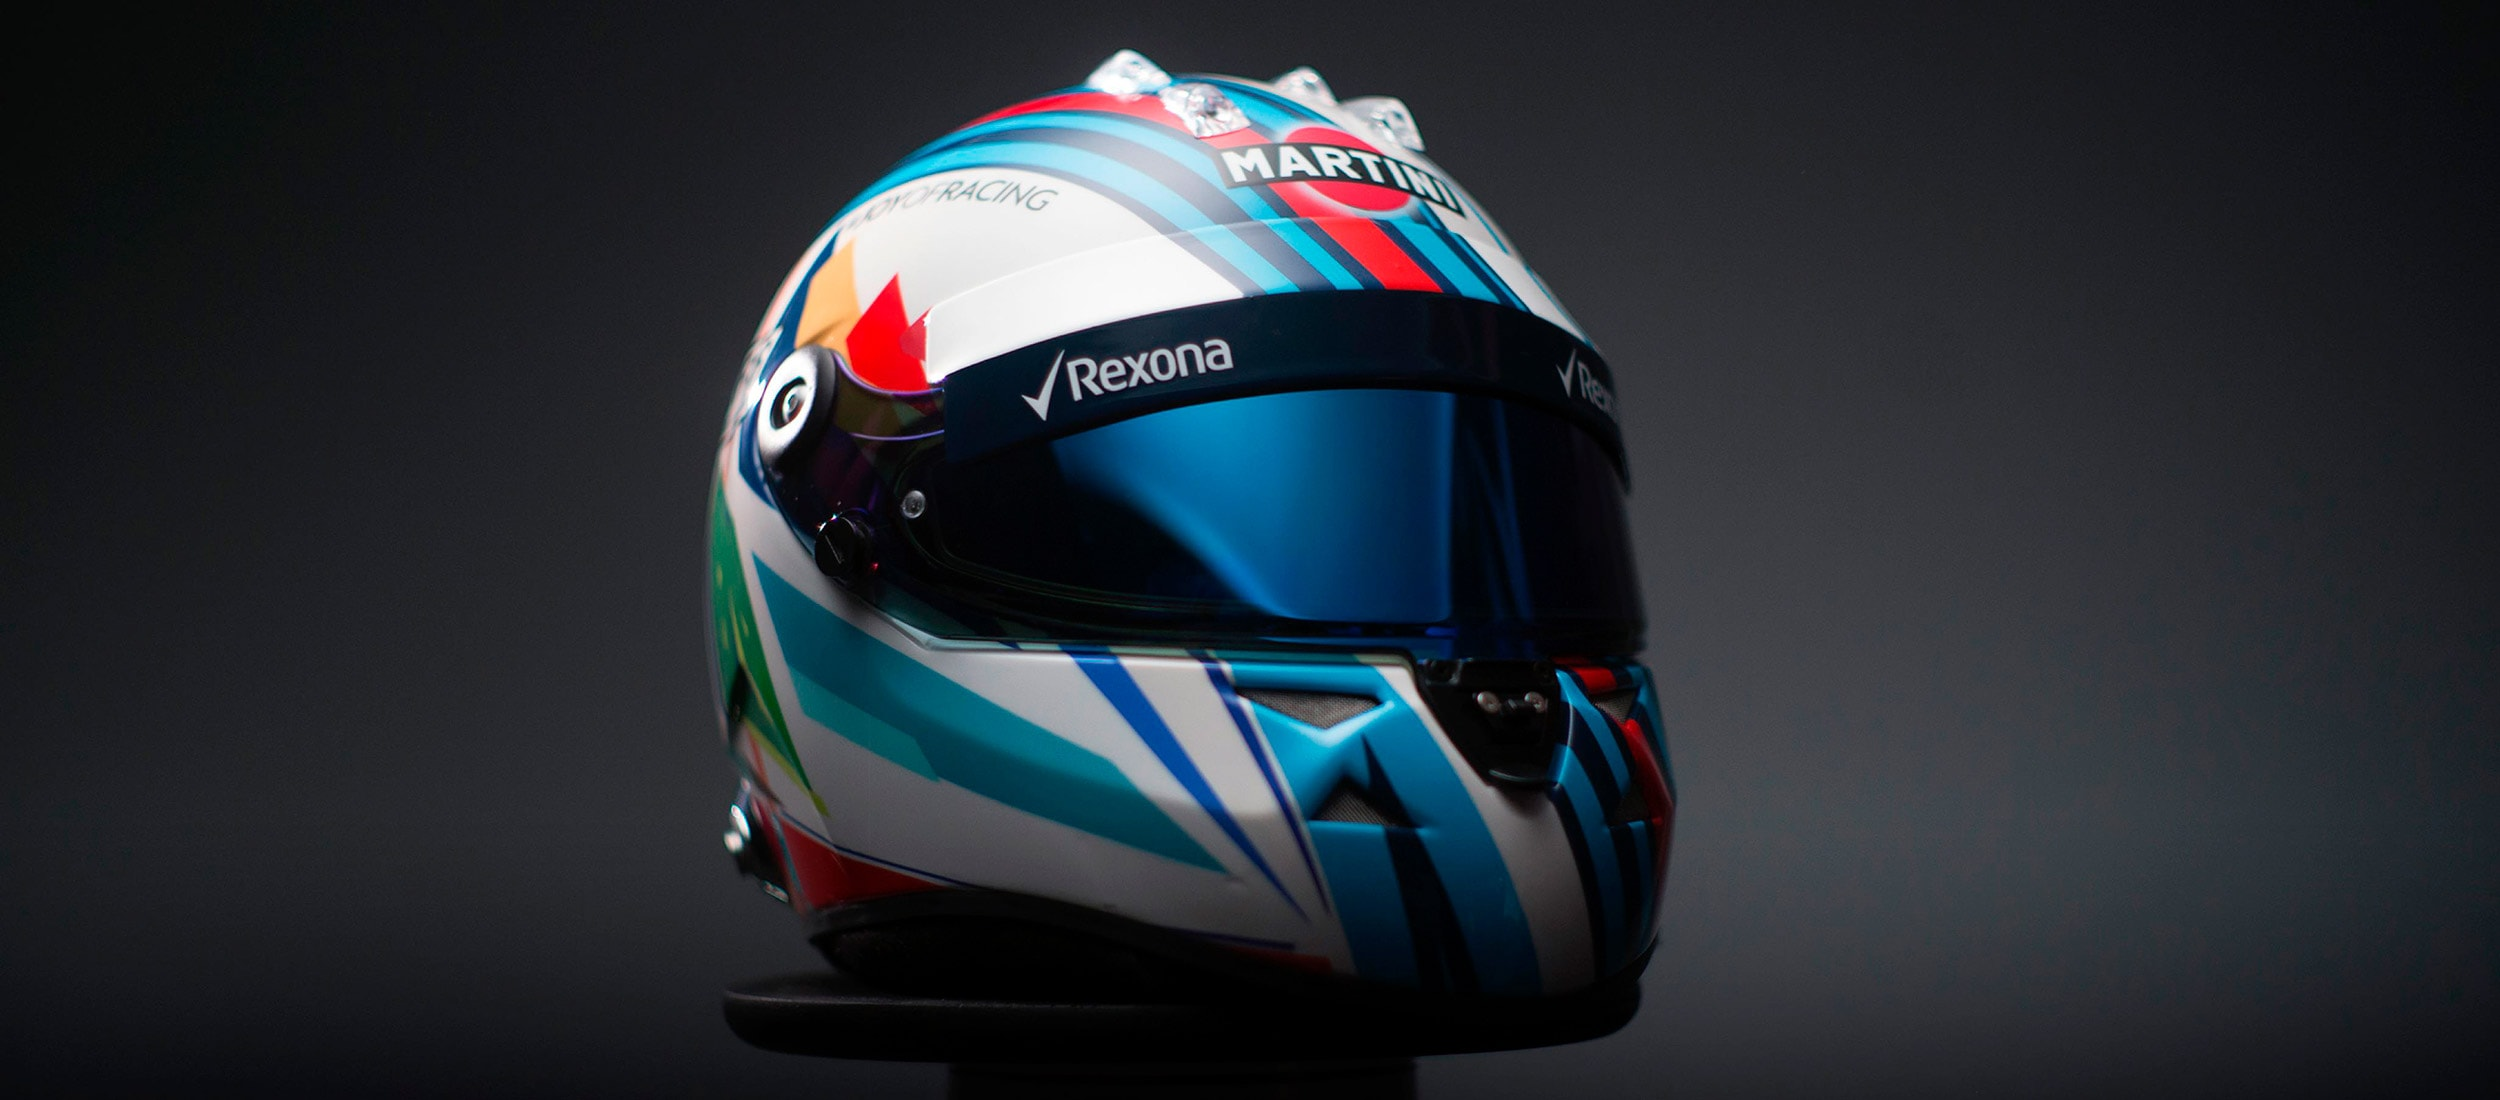 Felipe Massa Helmet - Ink and Movement - Kenor